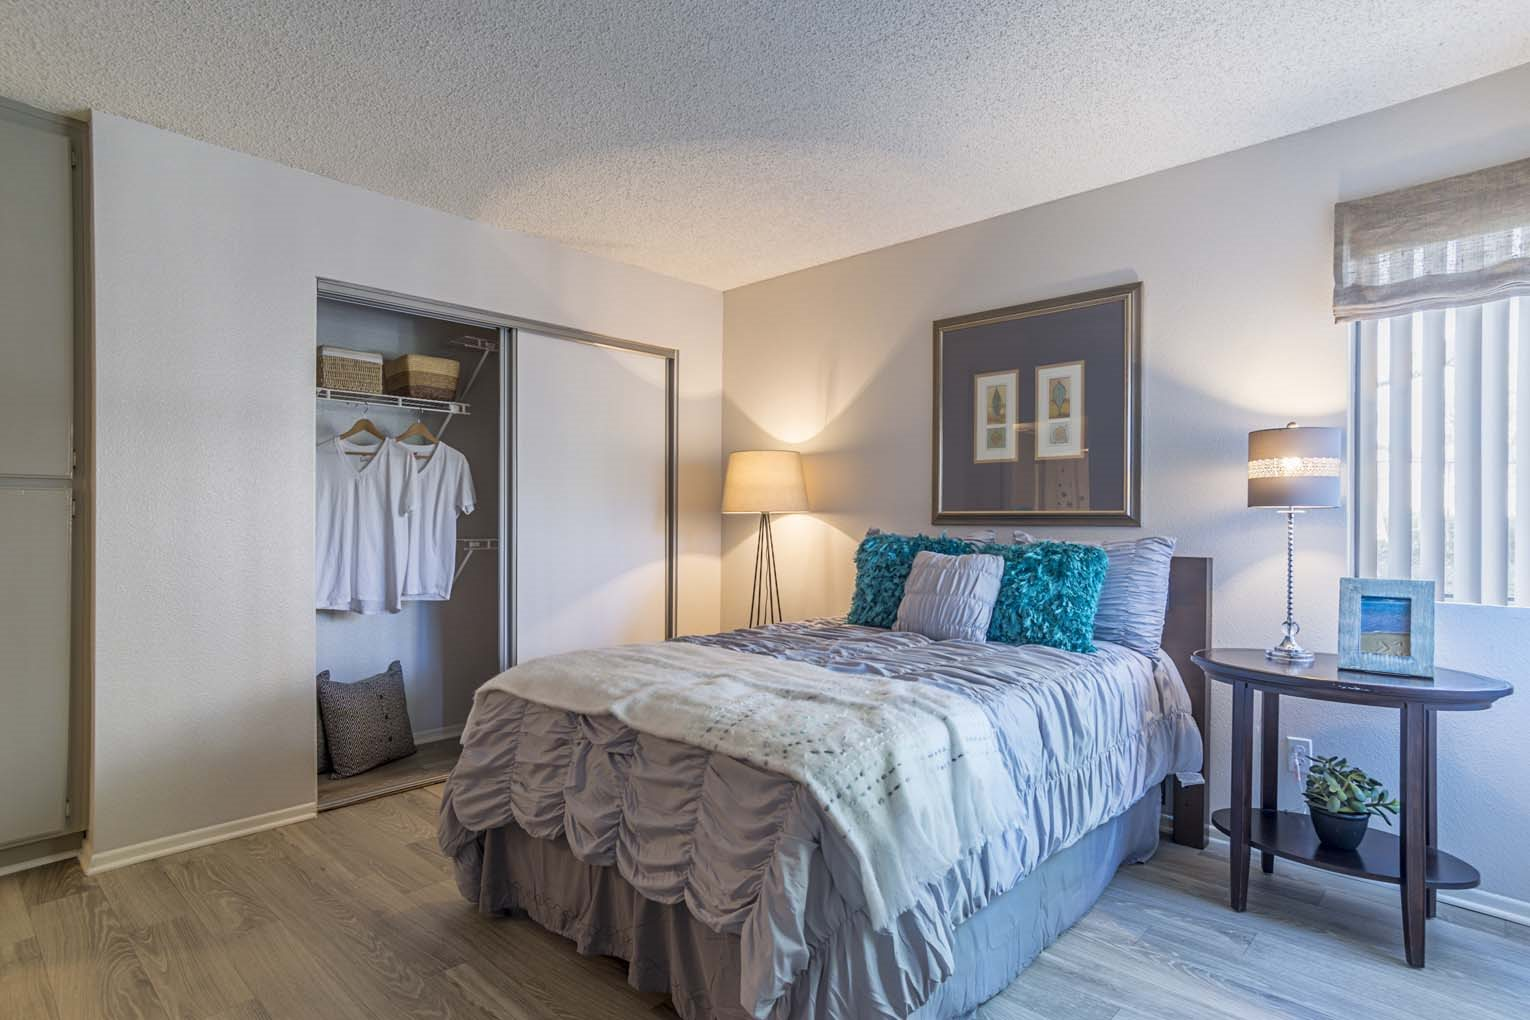 Guest bedroom at Hensley at Corona Pointe Apartments in Corona, CA